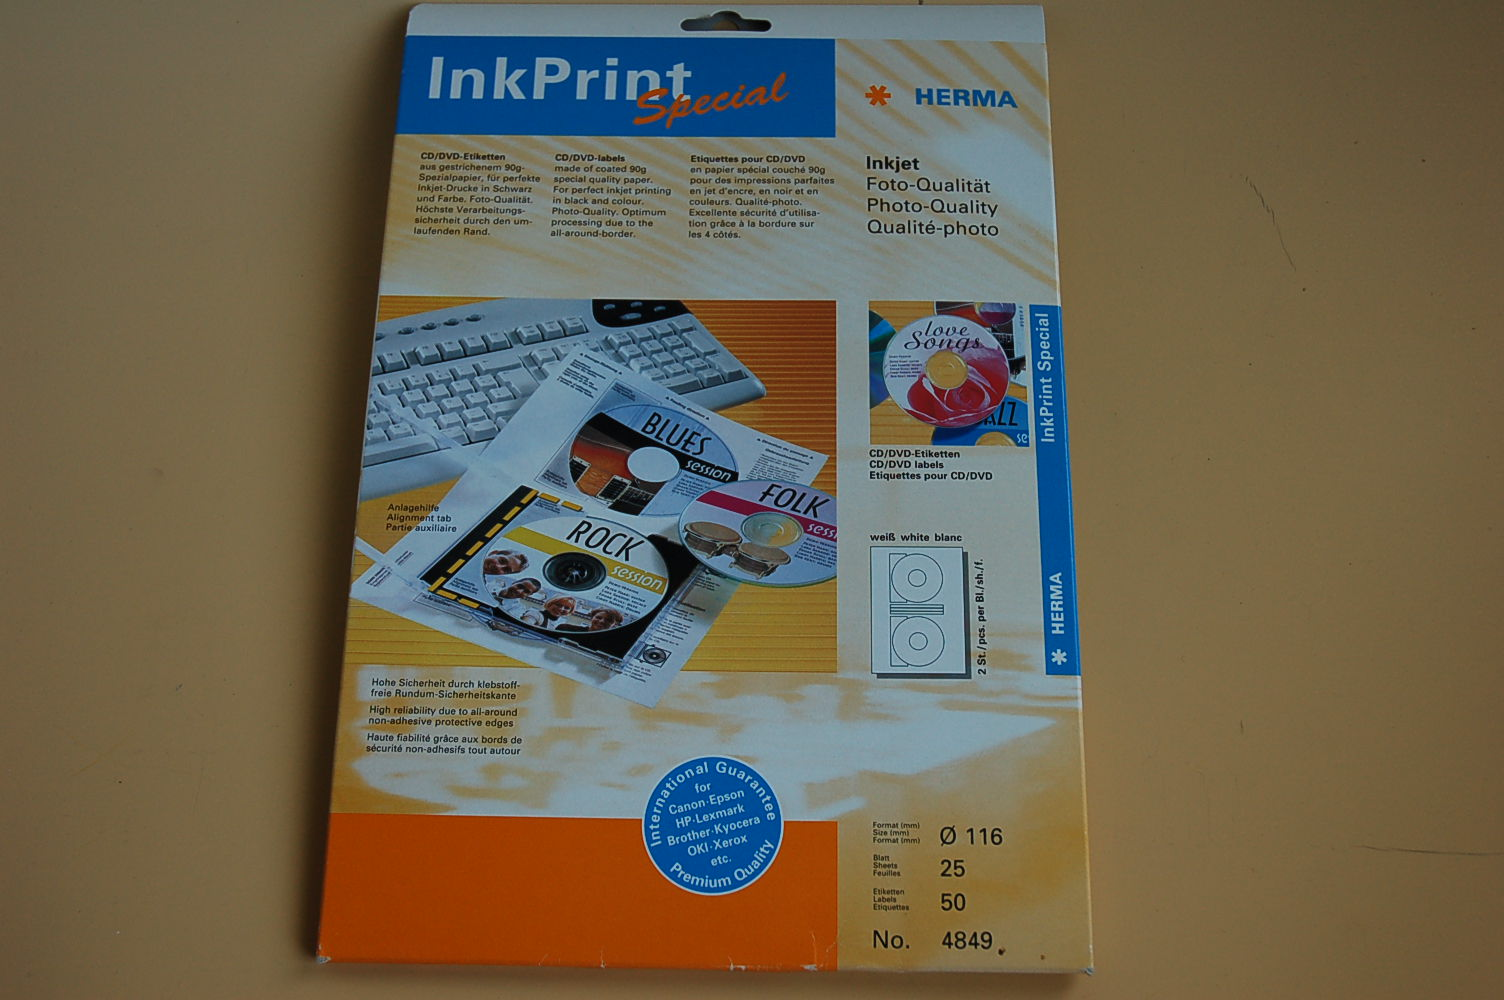 Herma InkPrint CD/ DVD Etiketten Ø116mm 25 Bl. 4849 (10Bl.=4,80€)